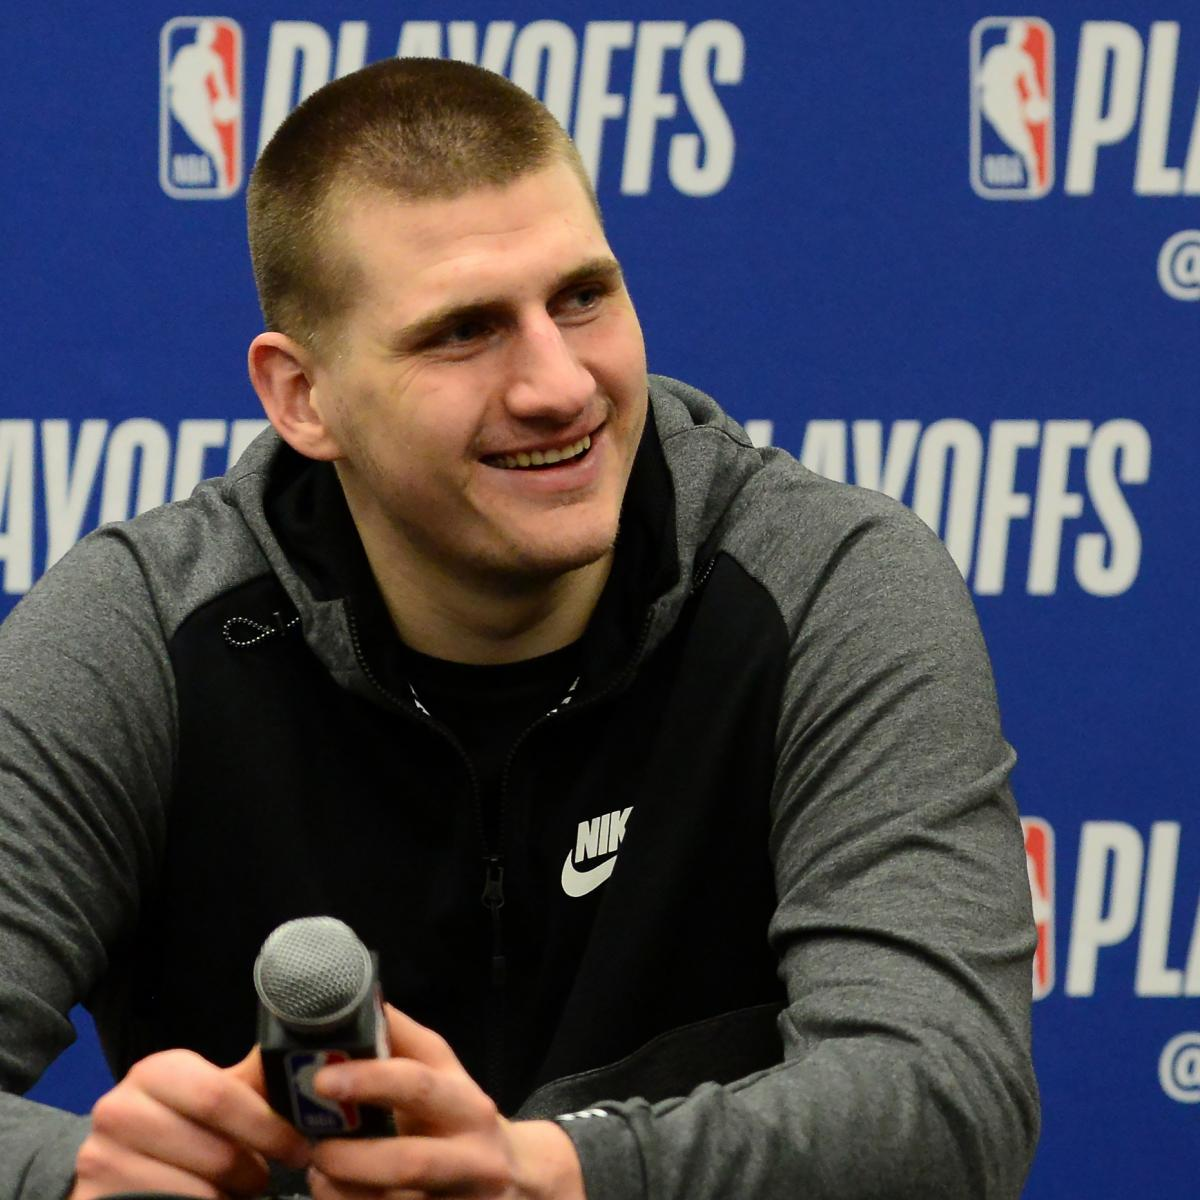 Watch Nikola Jokic Break Mic, Detail Off Day Activities